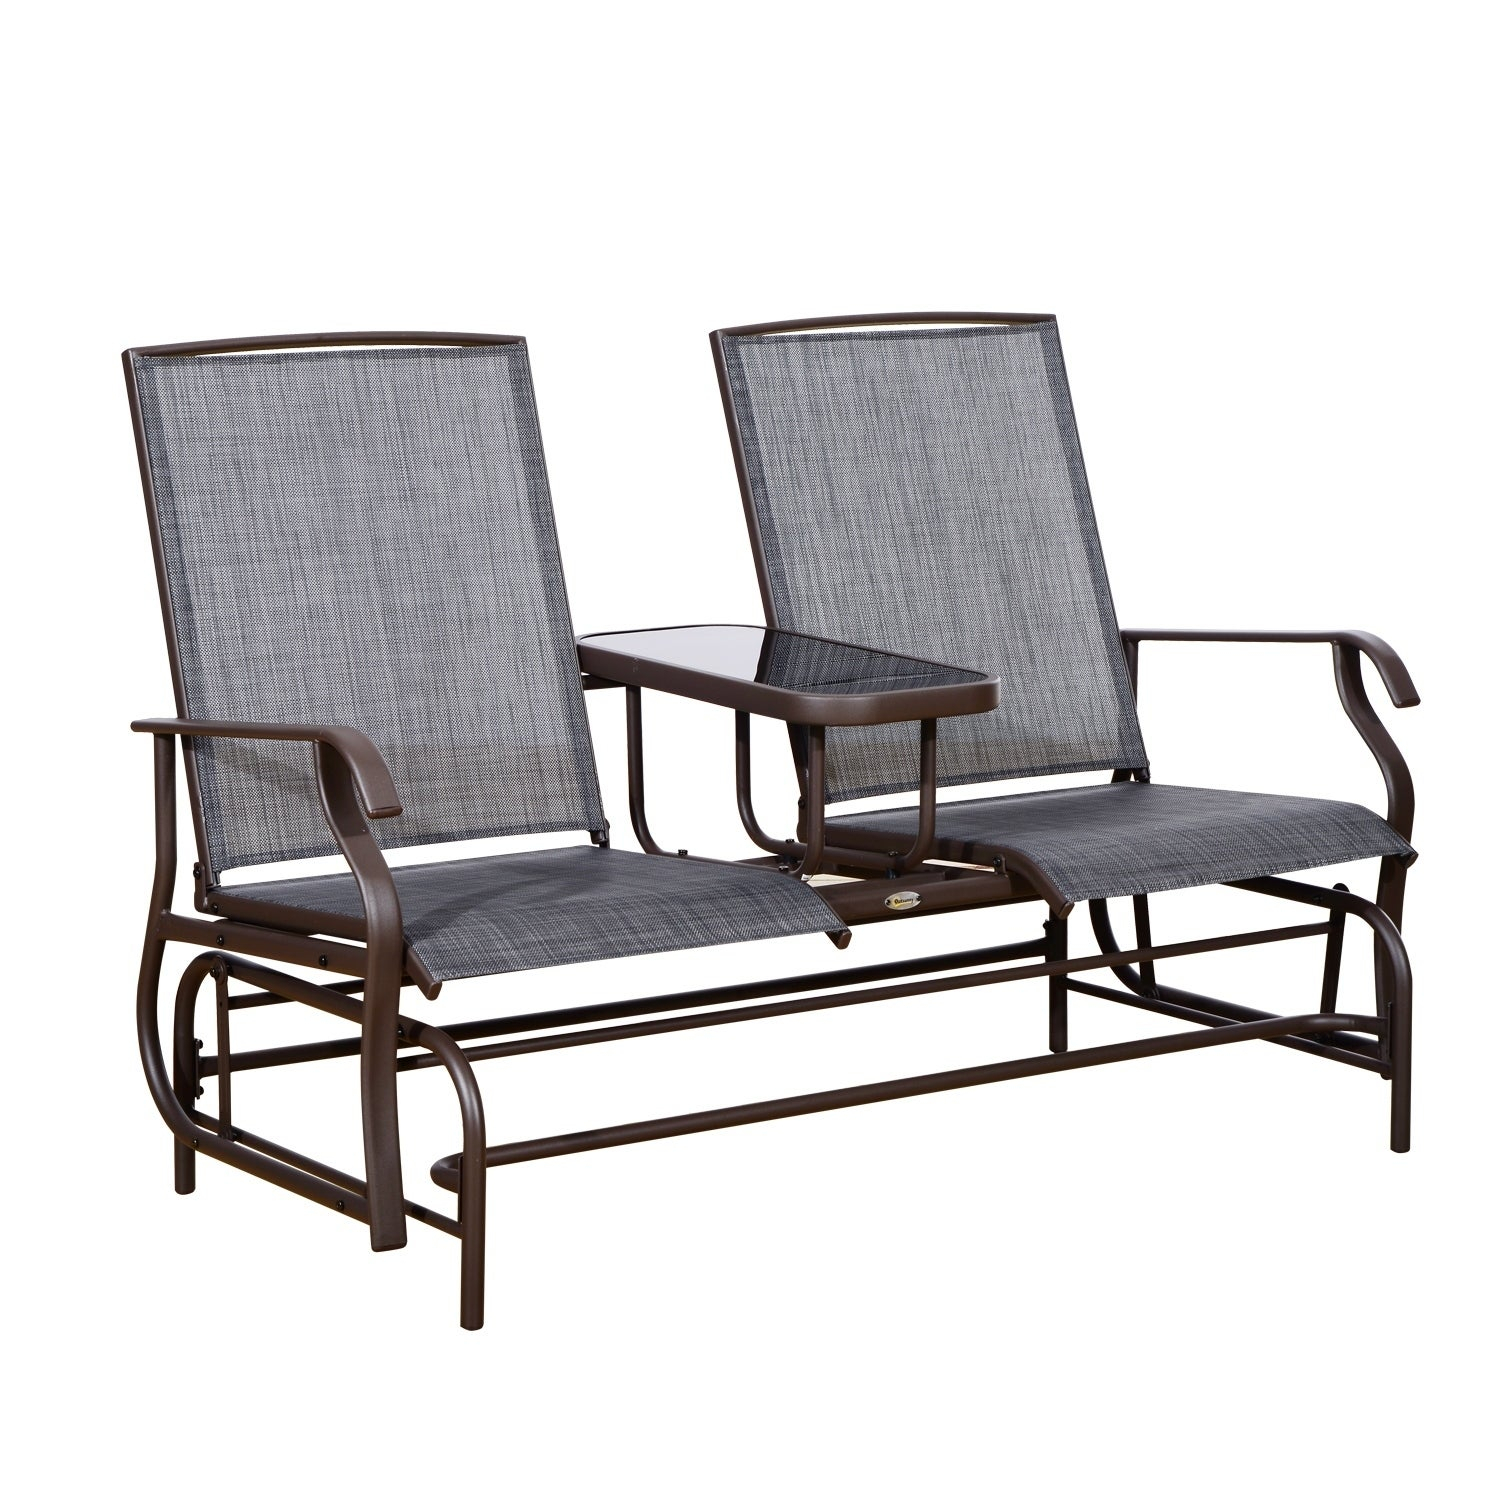 Outsunny Two Person Outdoor Mesh Fabric Patio Double Glider Chair With Center Table Throughout Twin Seat Glider Benches (View 10 of 25)